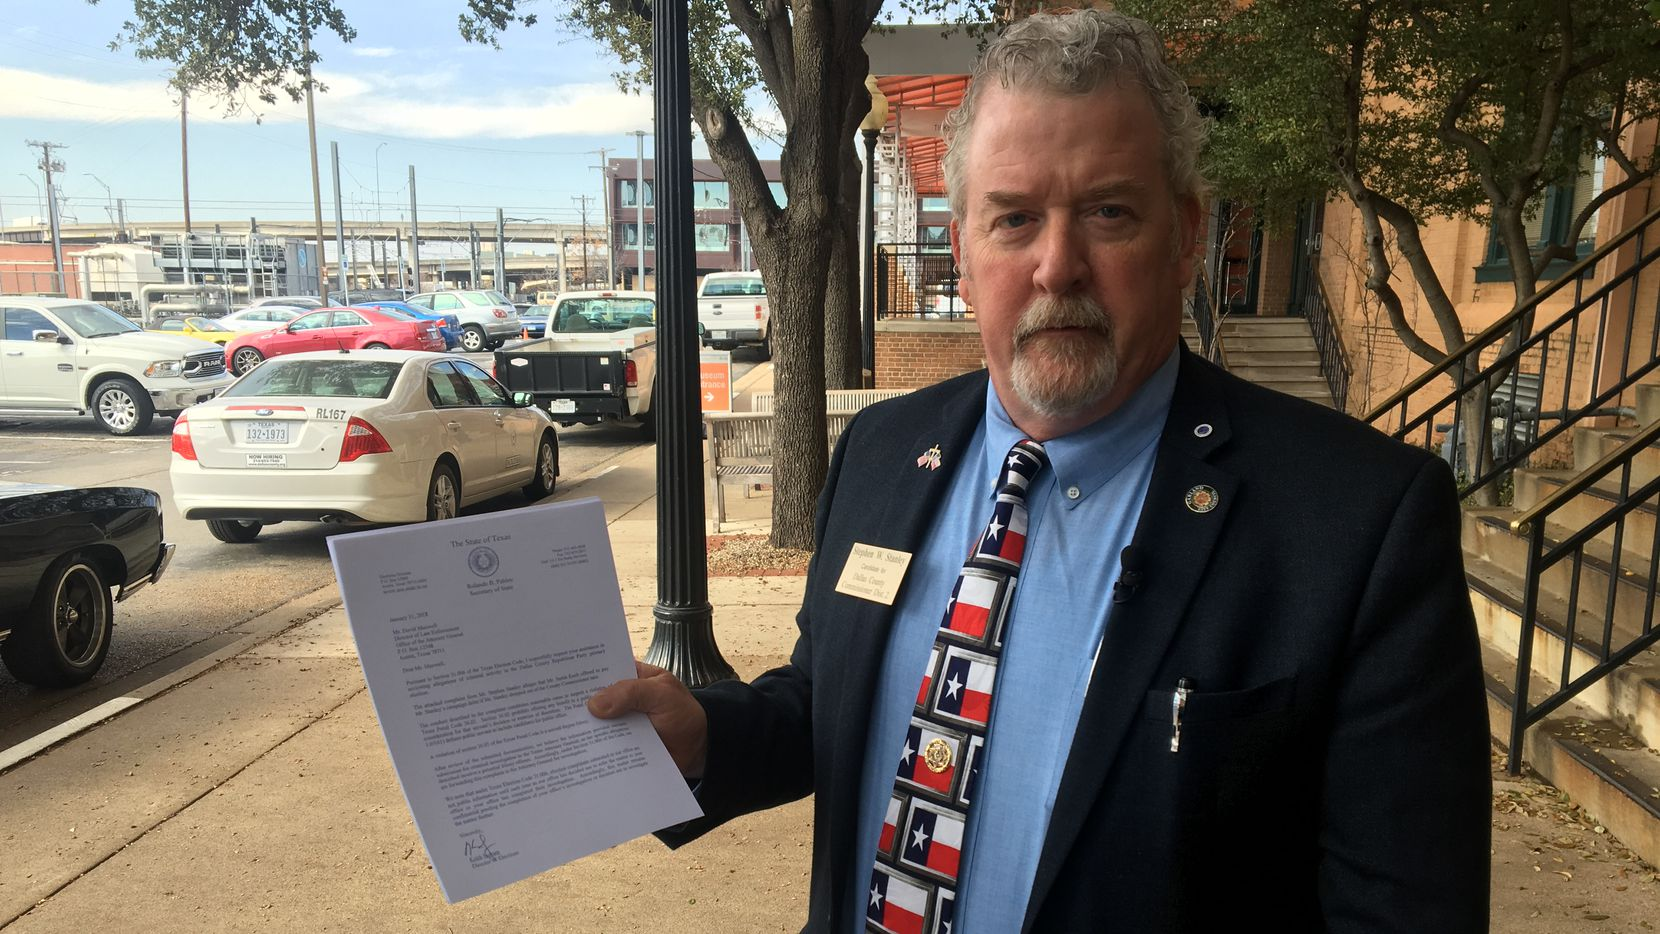 Former Garland City Council member Stephen Stanley holds a copy of a letter requesting a criminal investigation into a complaint he filed against his opponent.